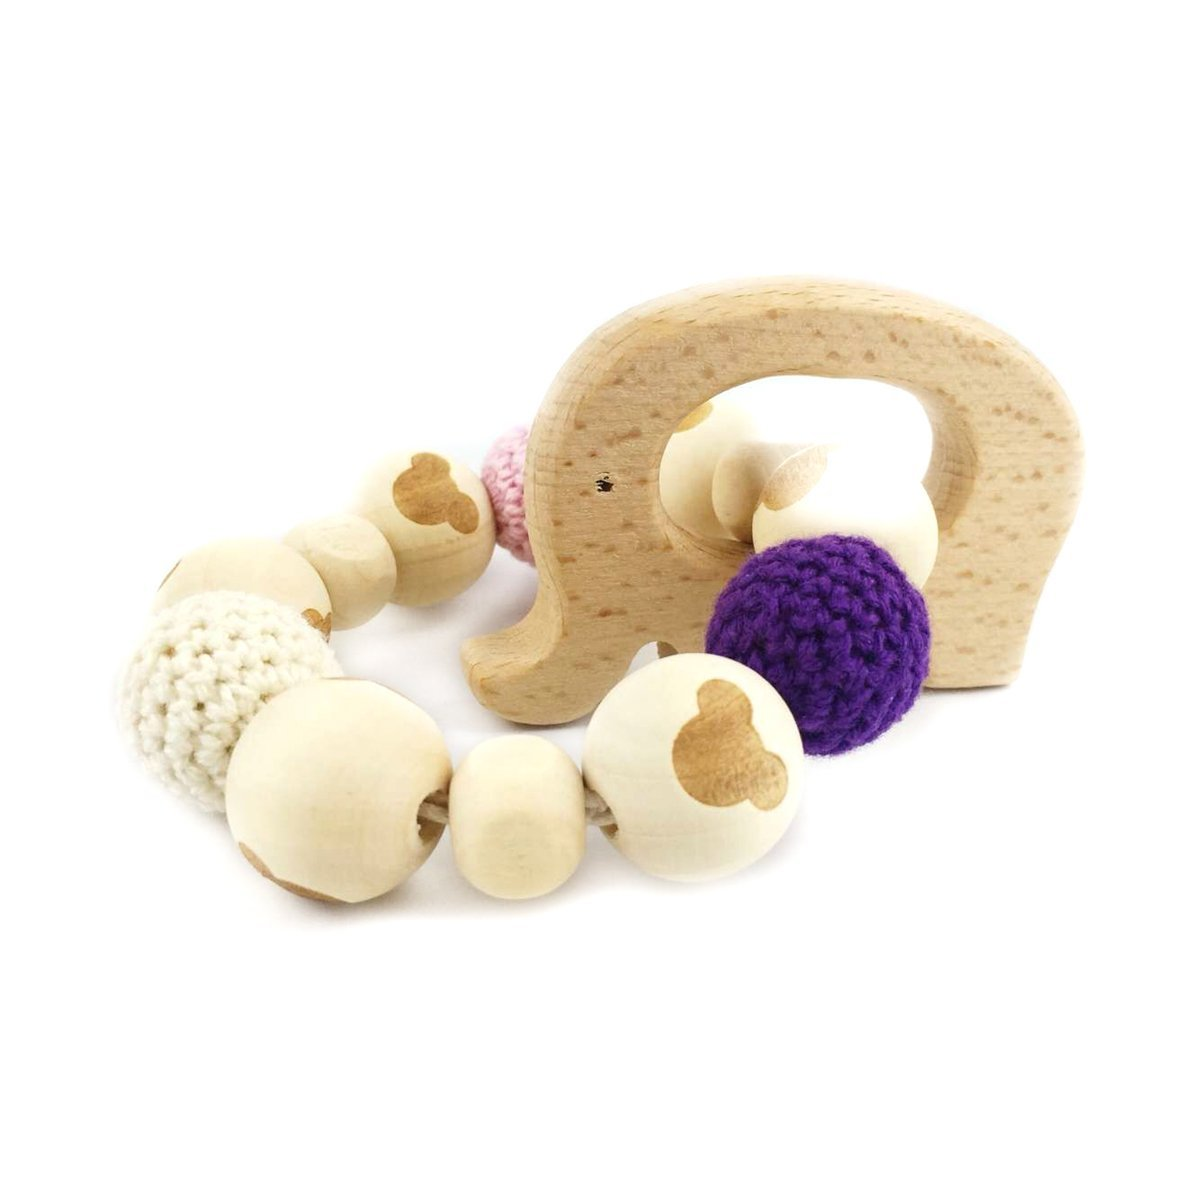 Elephant Wooden Teether Chew Beads Baby Rattle Teether Nattural Raw Crochet Beads Toy Mom Bracelet Ecofriendly Baby Teething (Elephant)